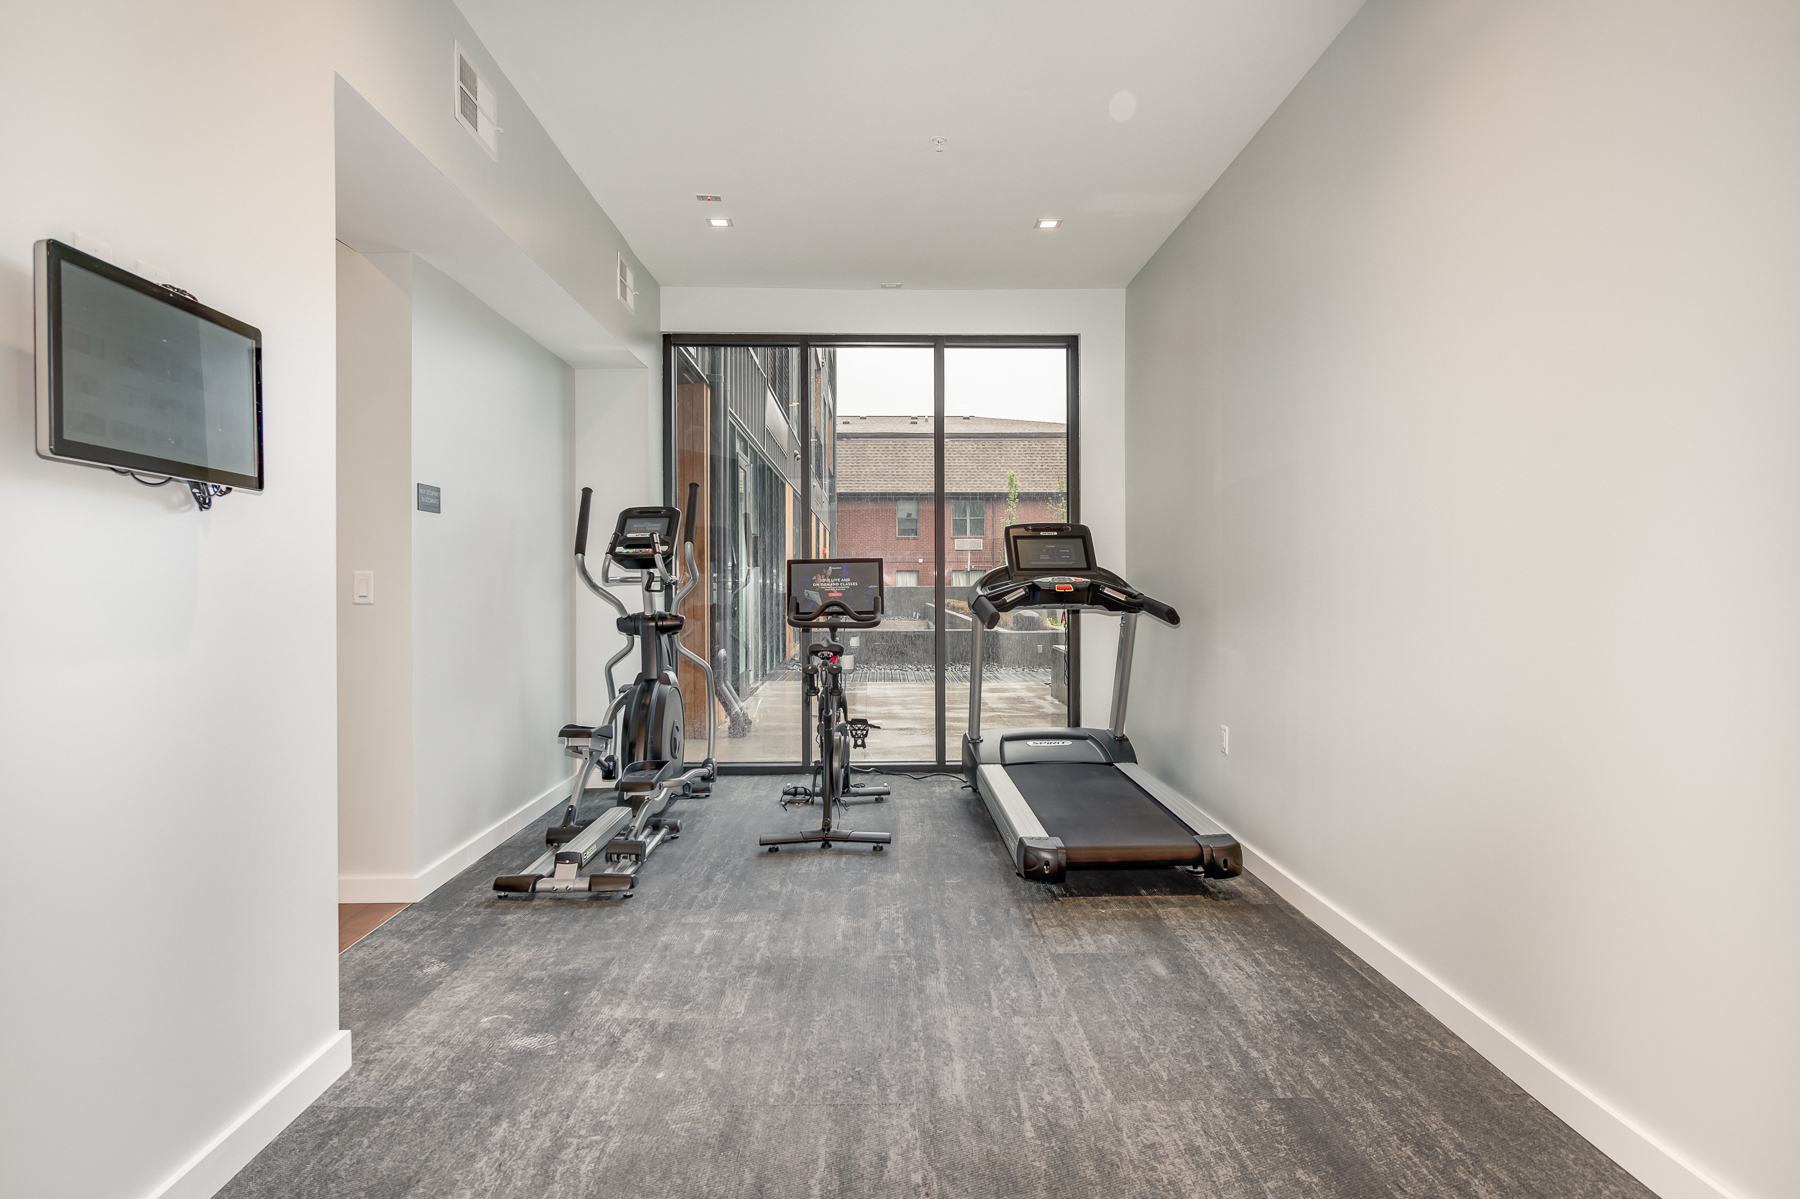 Additional photo for property listing at 4101 Laclede Ave # 205 St. Louis, Missouri 63108 United States